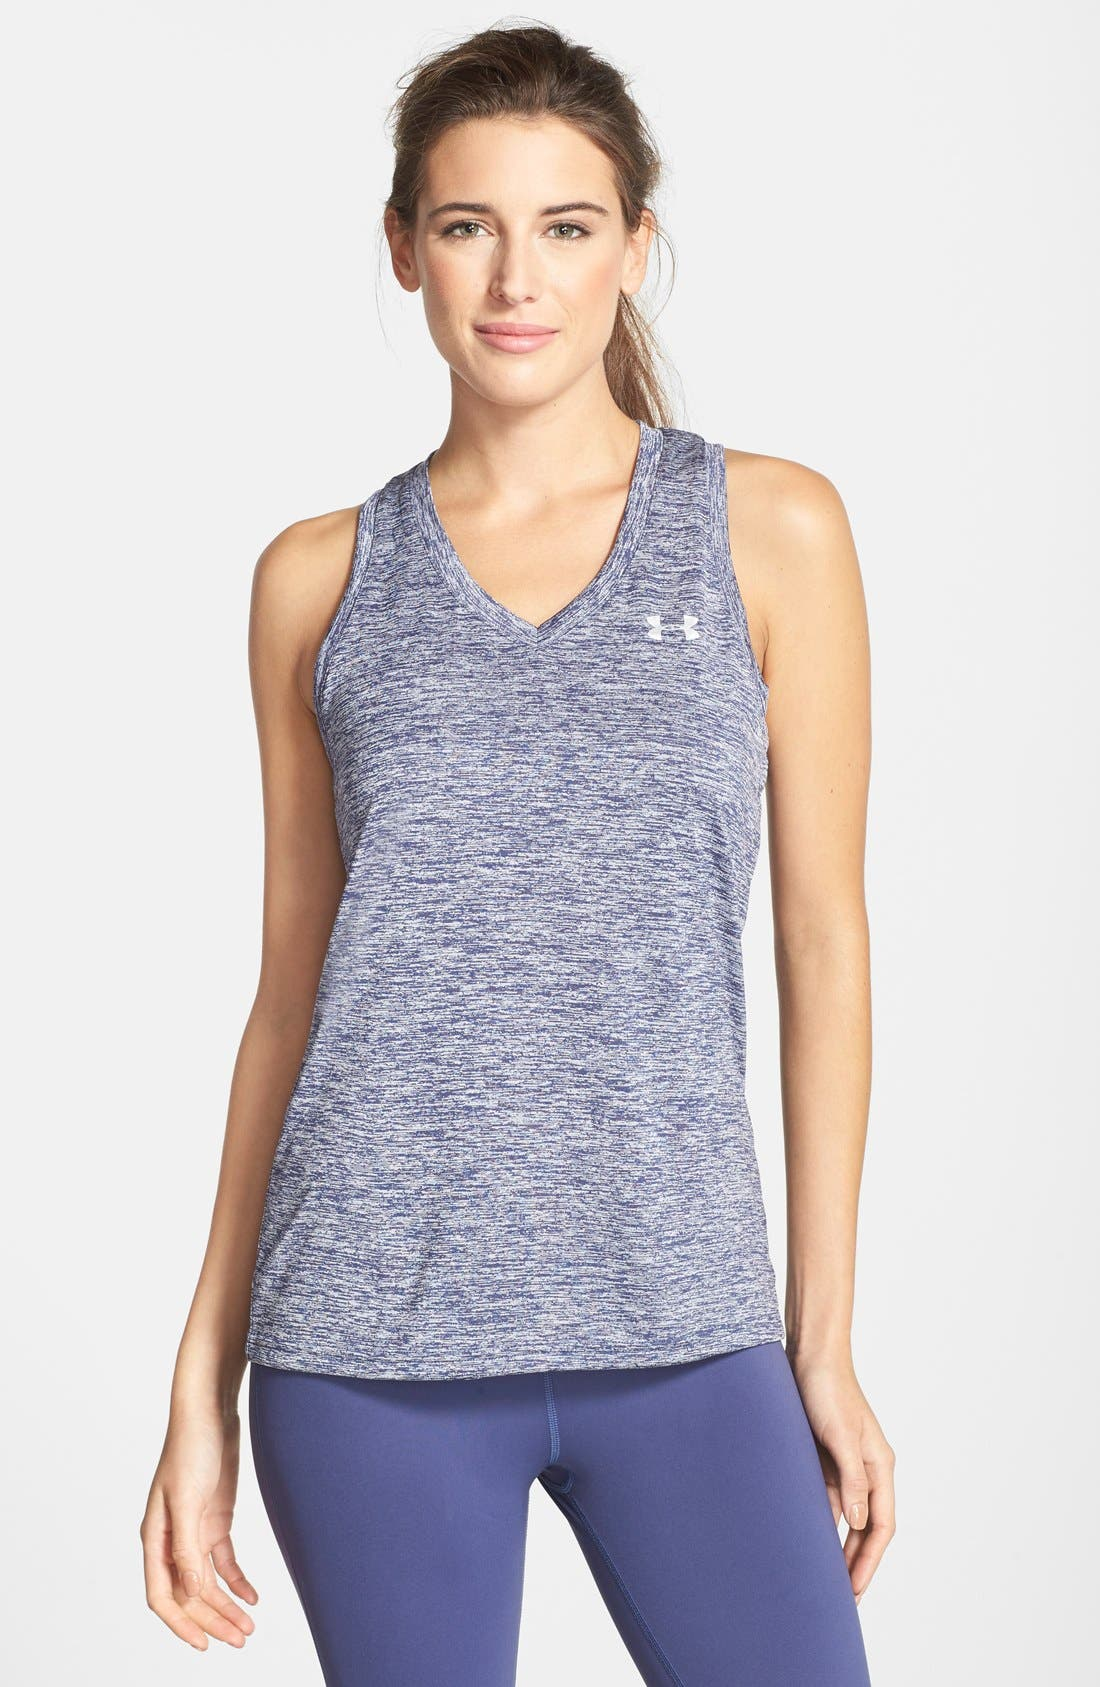 Main Image - Under Armour 'Twisted Tech' Tank